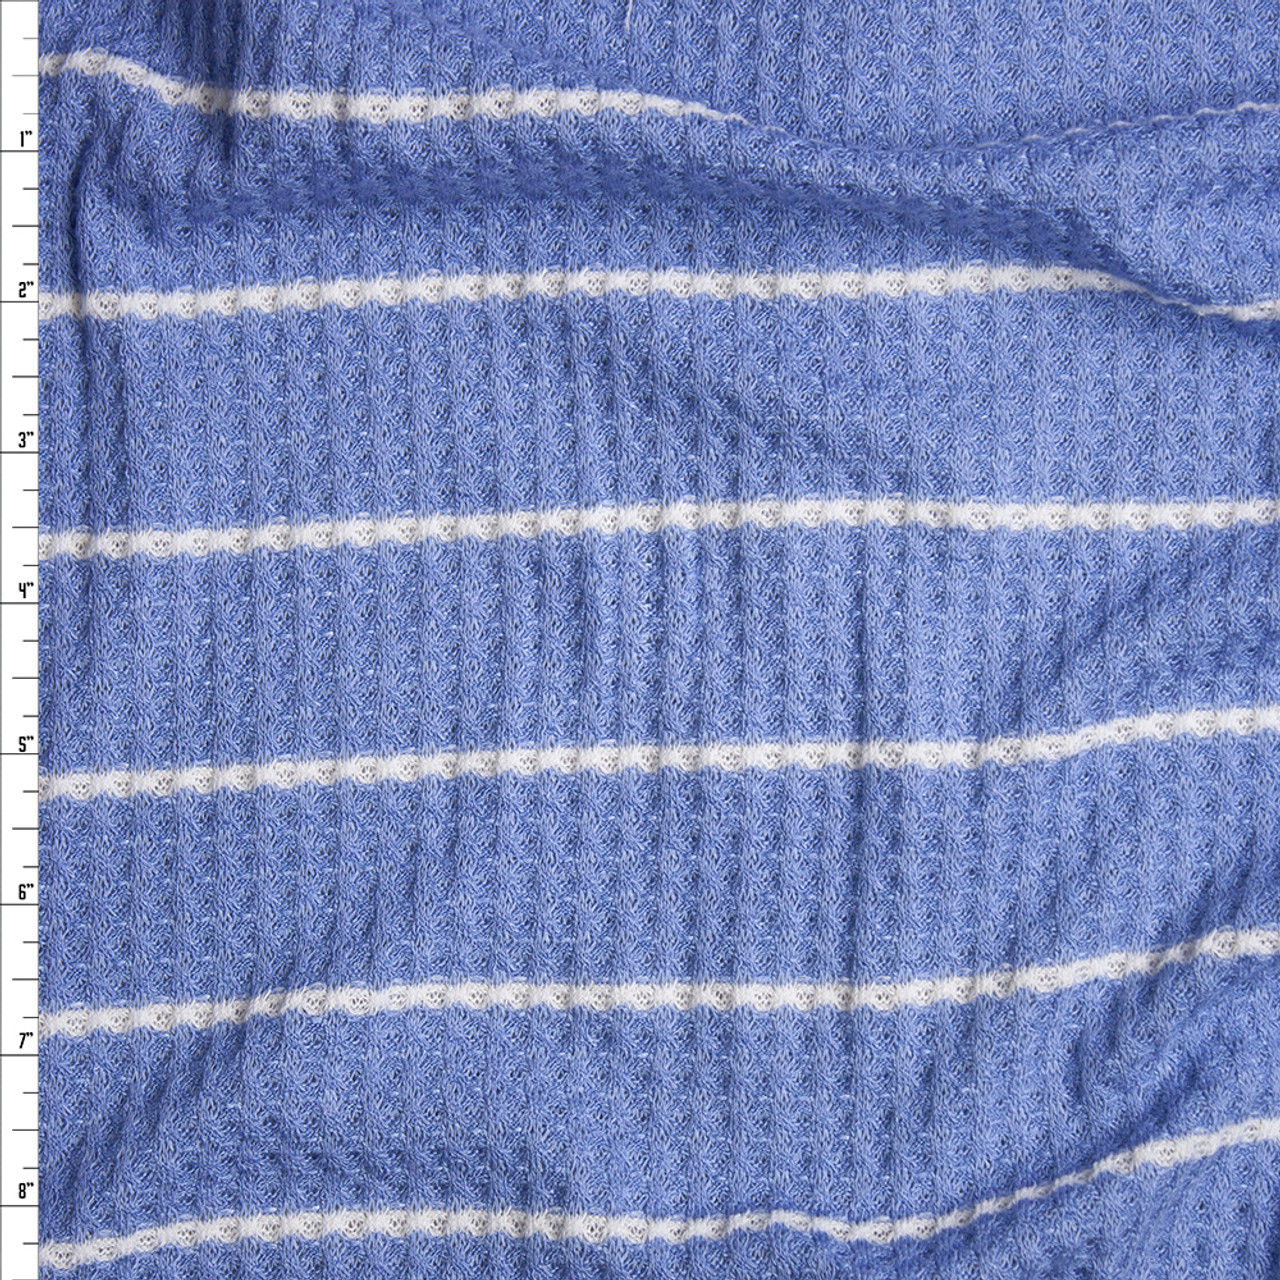 3992d58d7d Light Blue with Horizontal White Striped Soft Waffle Knit Fabric By The  Yard ...